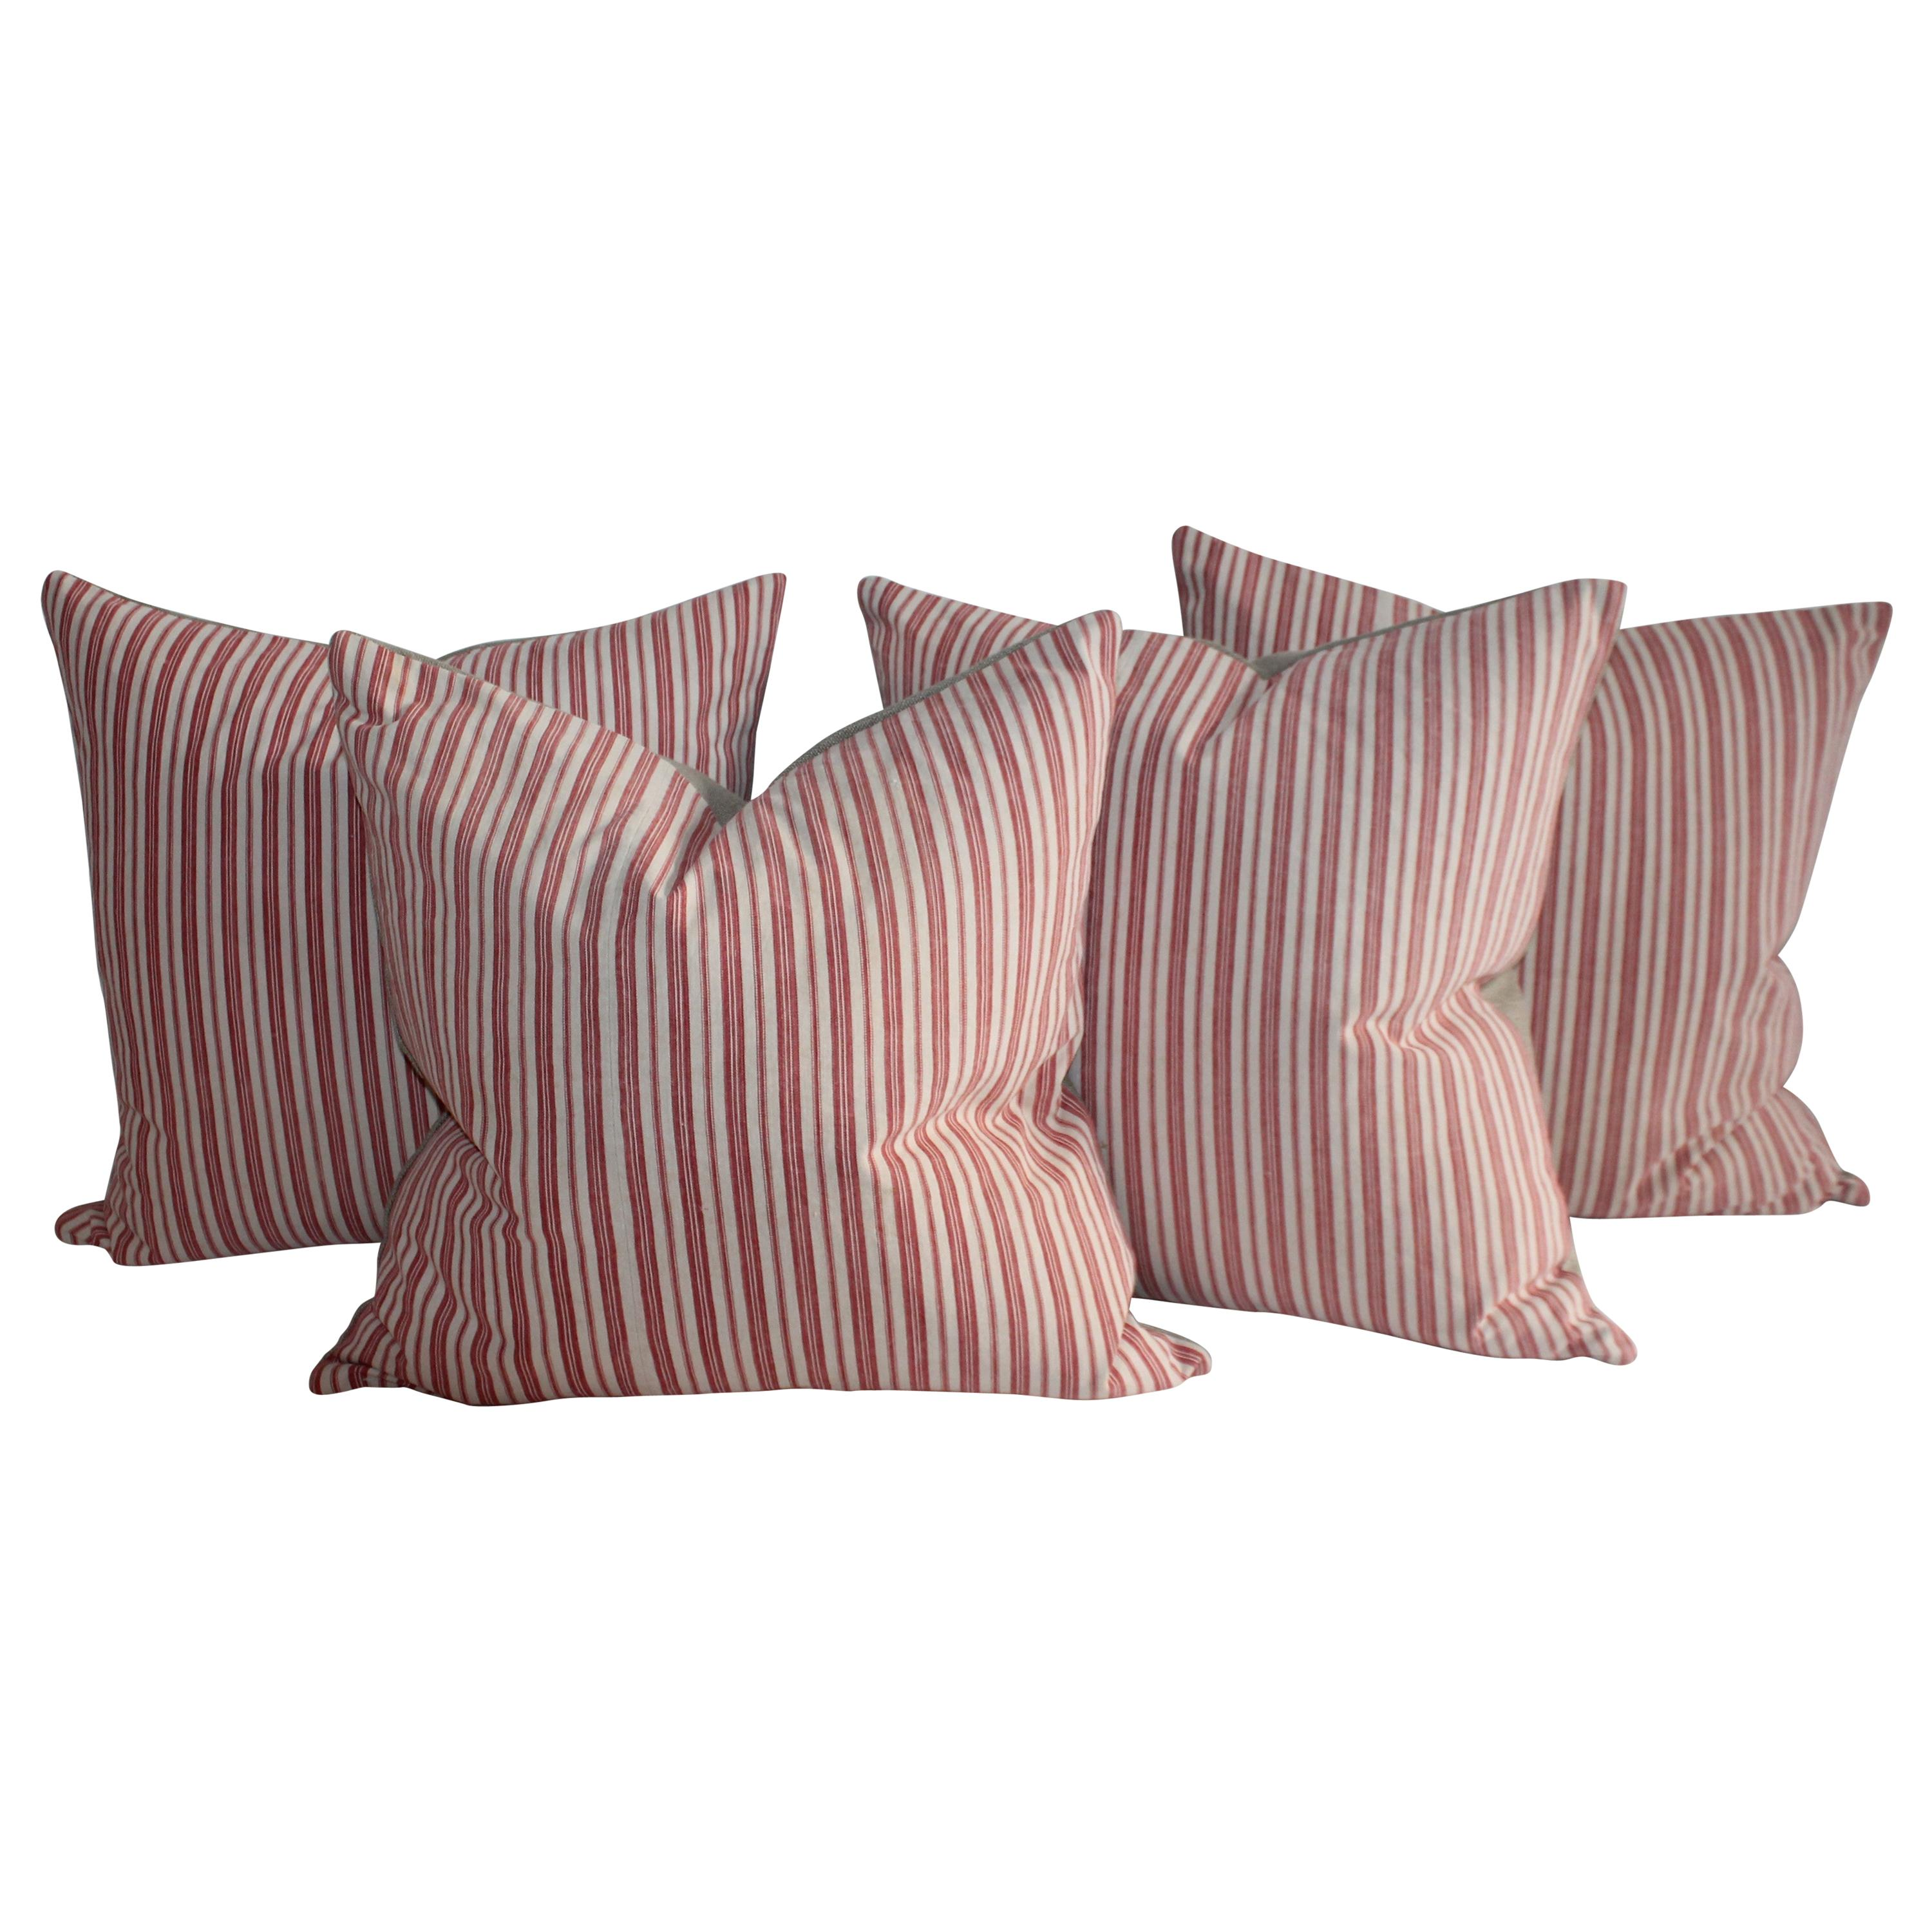 19th Century Cherry Striped Ticking Pillows / Collection of Four